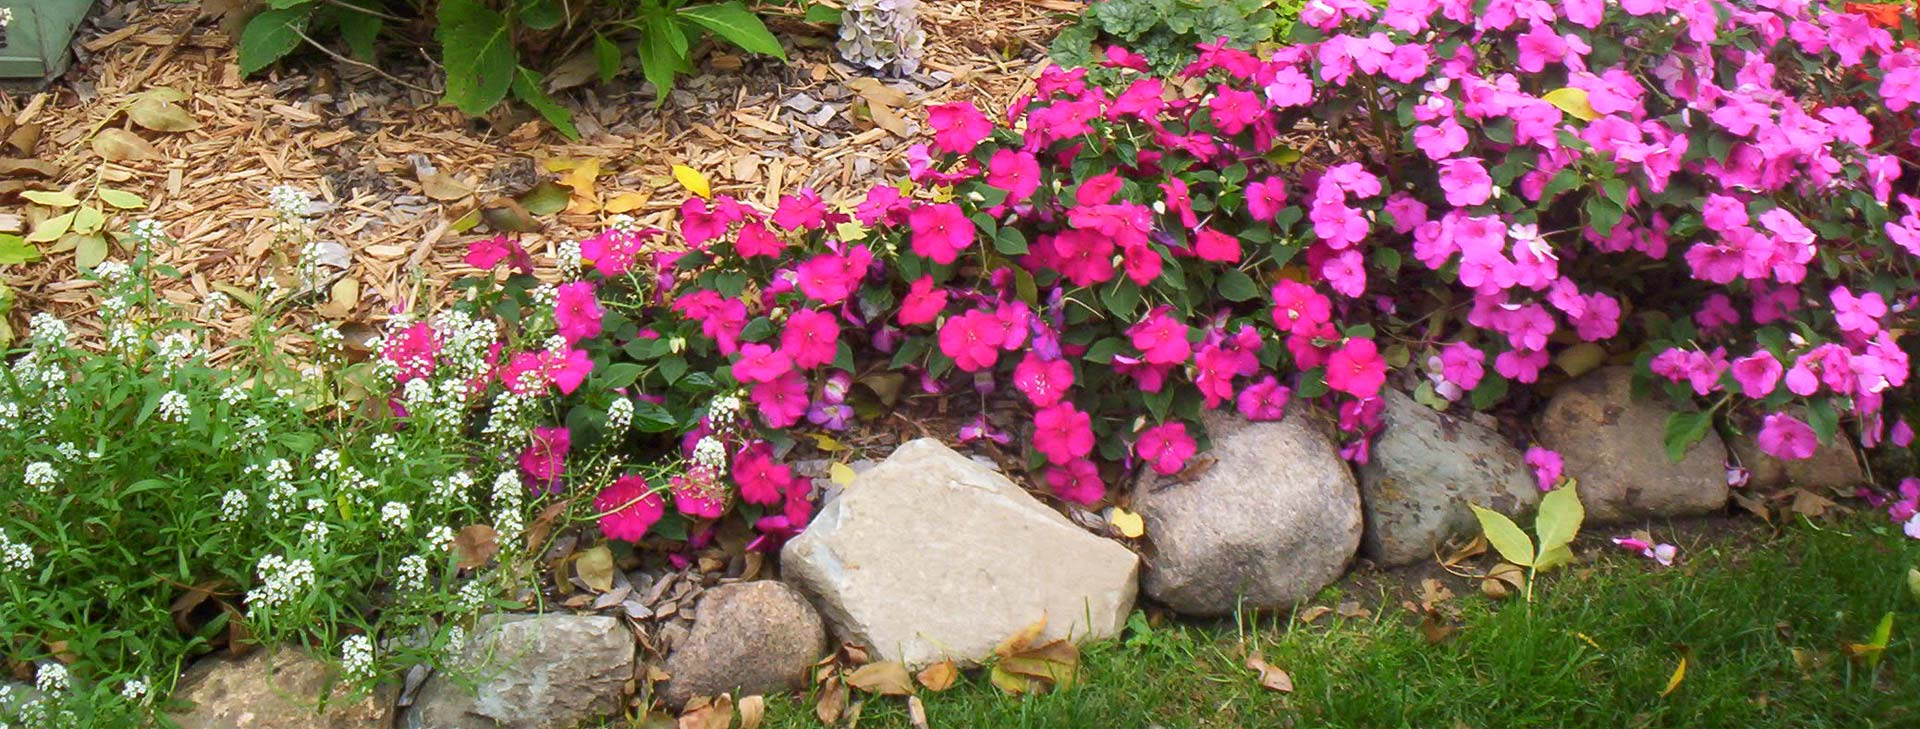 Flower bed in front of house with vibrant pink and purple flowes